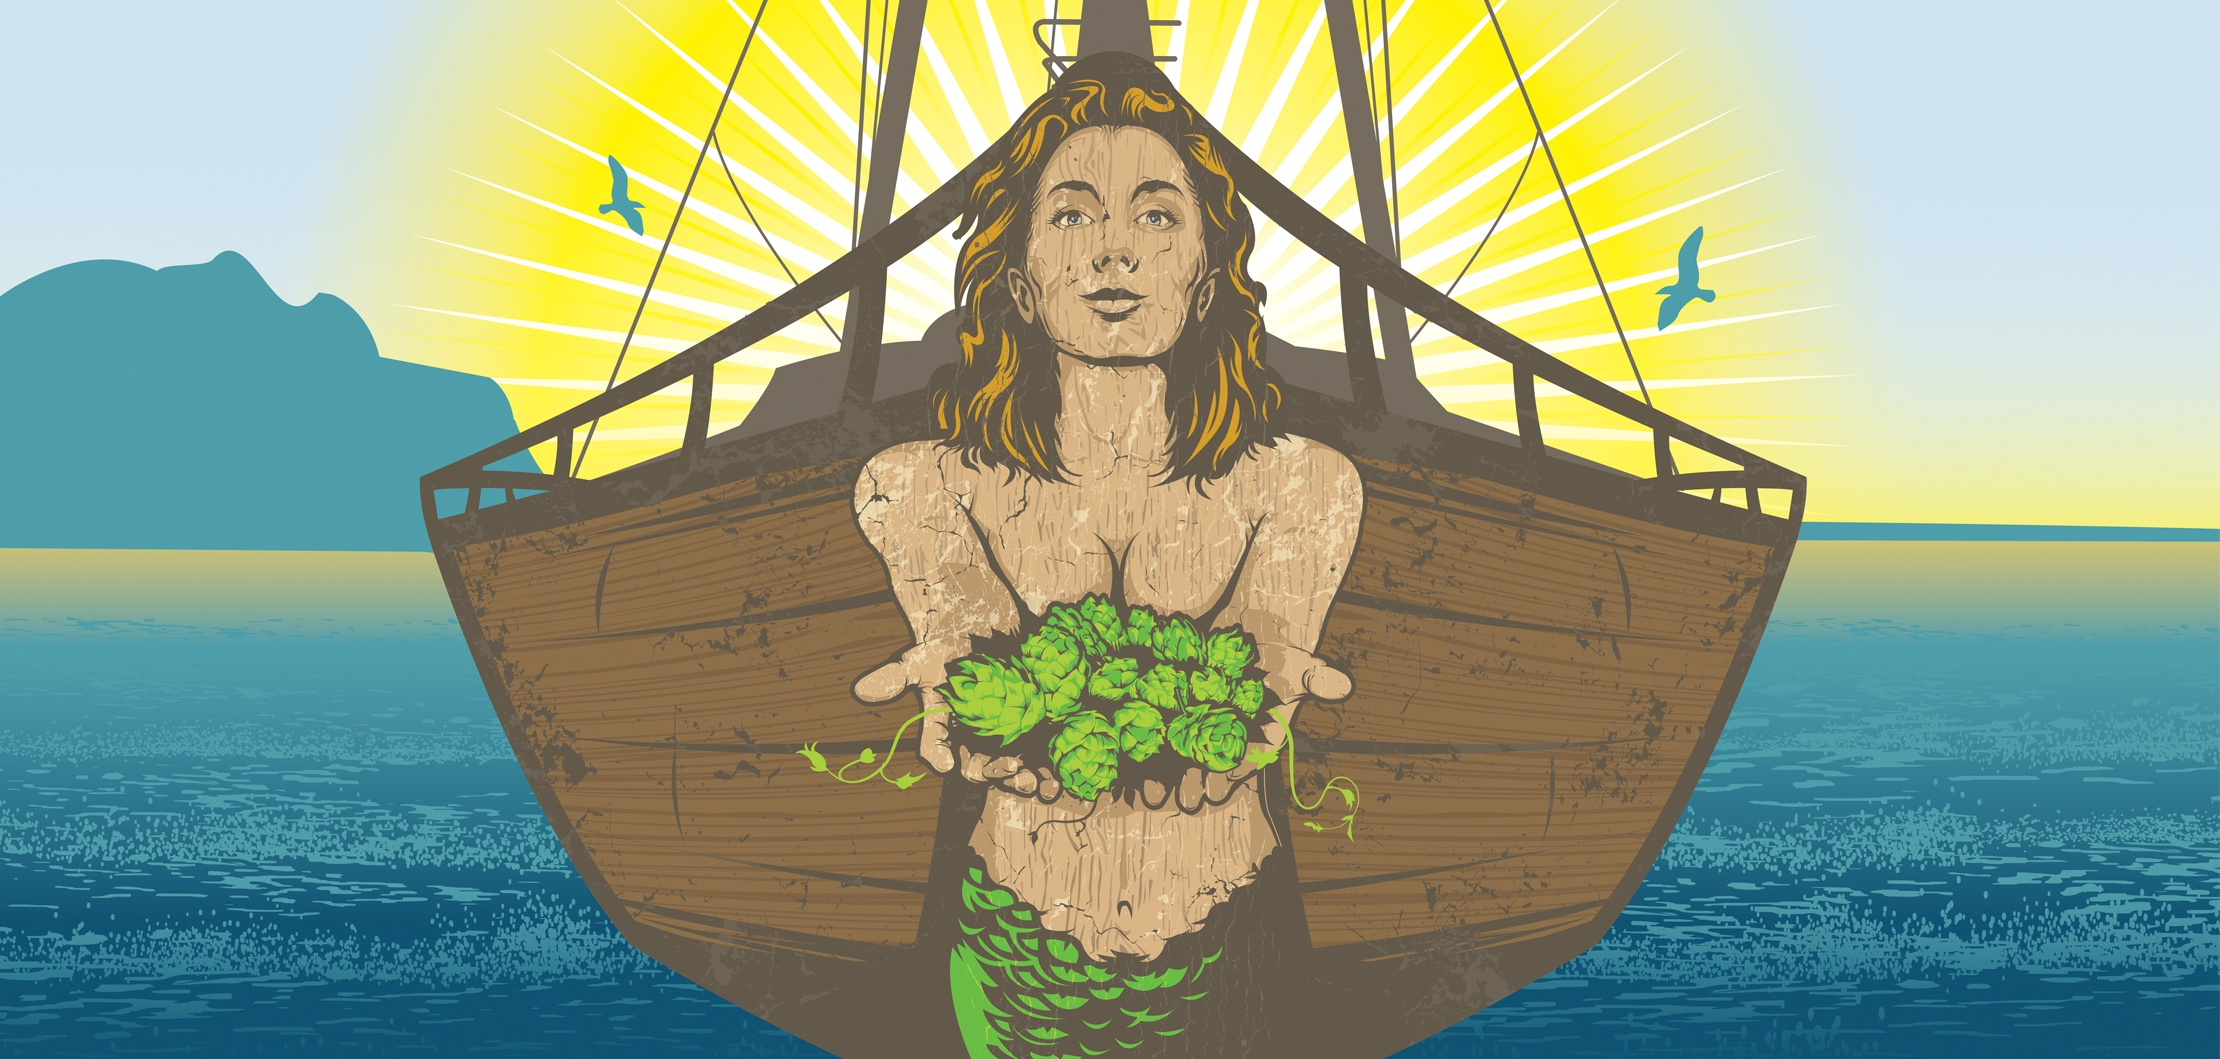 """EGC first established Garvies Point Brewery's brand identity with a sexy, hand-illustrated, """"Hops Mermaid Goddess"""" ship figurehead."""